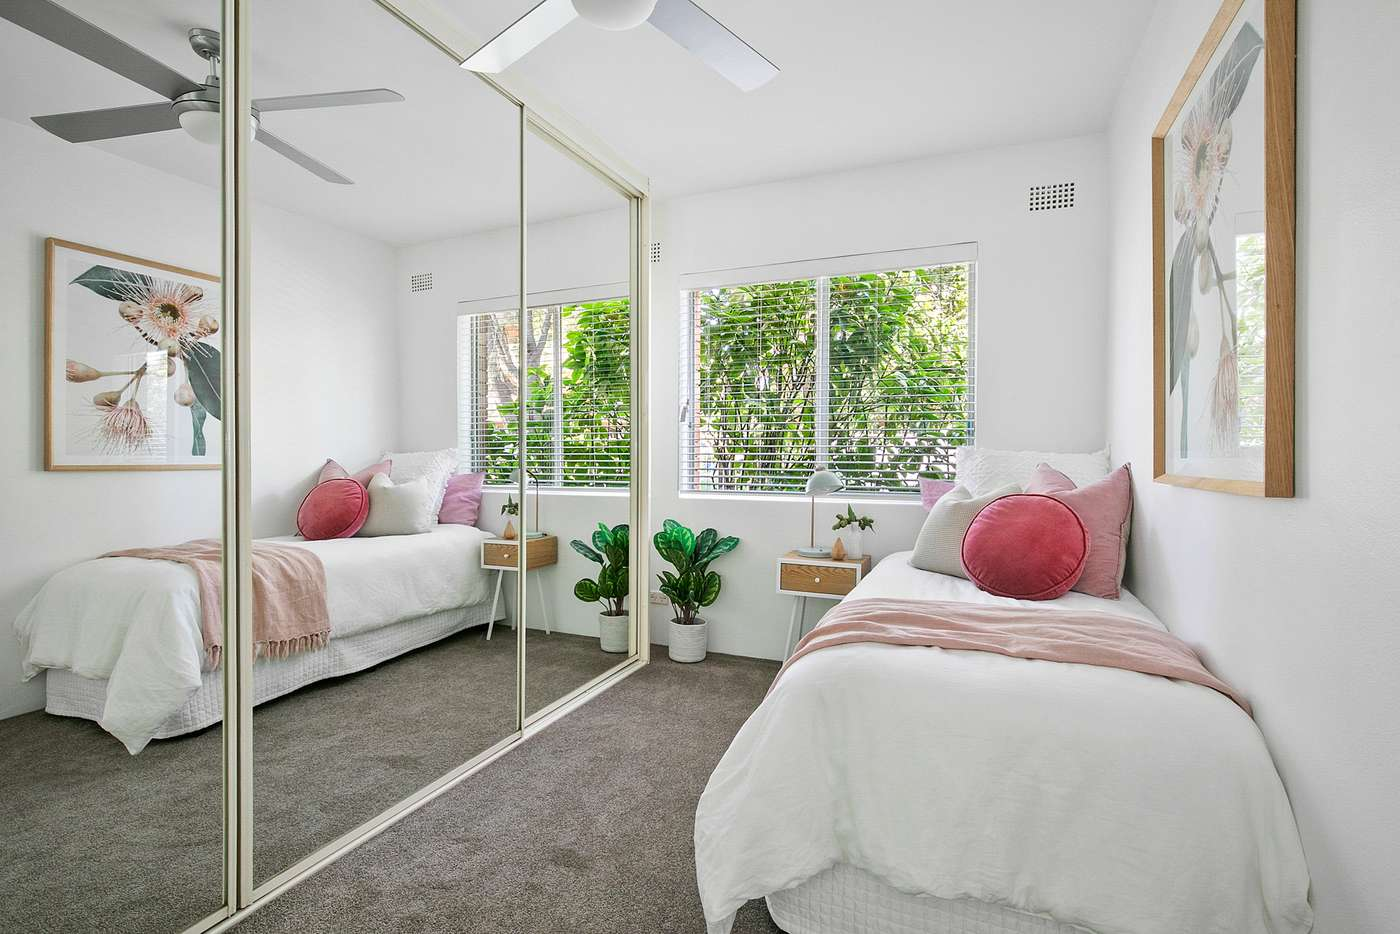 Sixth view of Homely apartment listing, 2/5 Fairway Close, Manly Vale NSW 2093